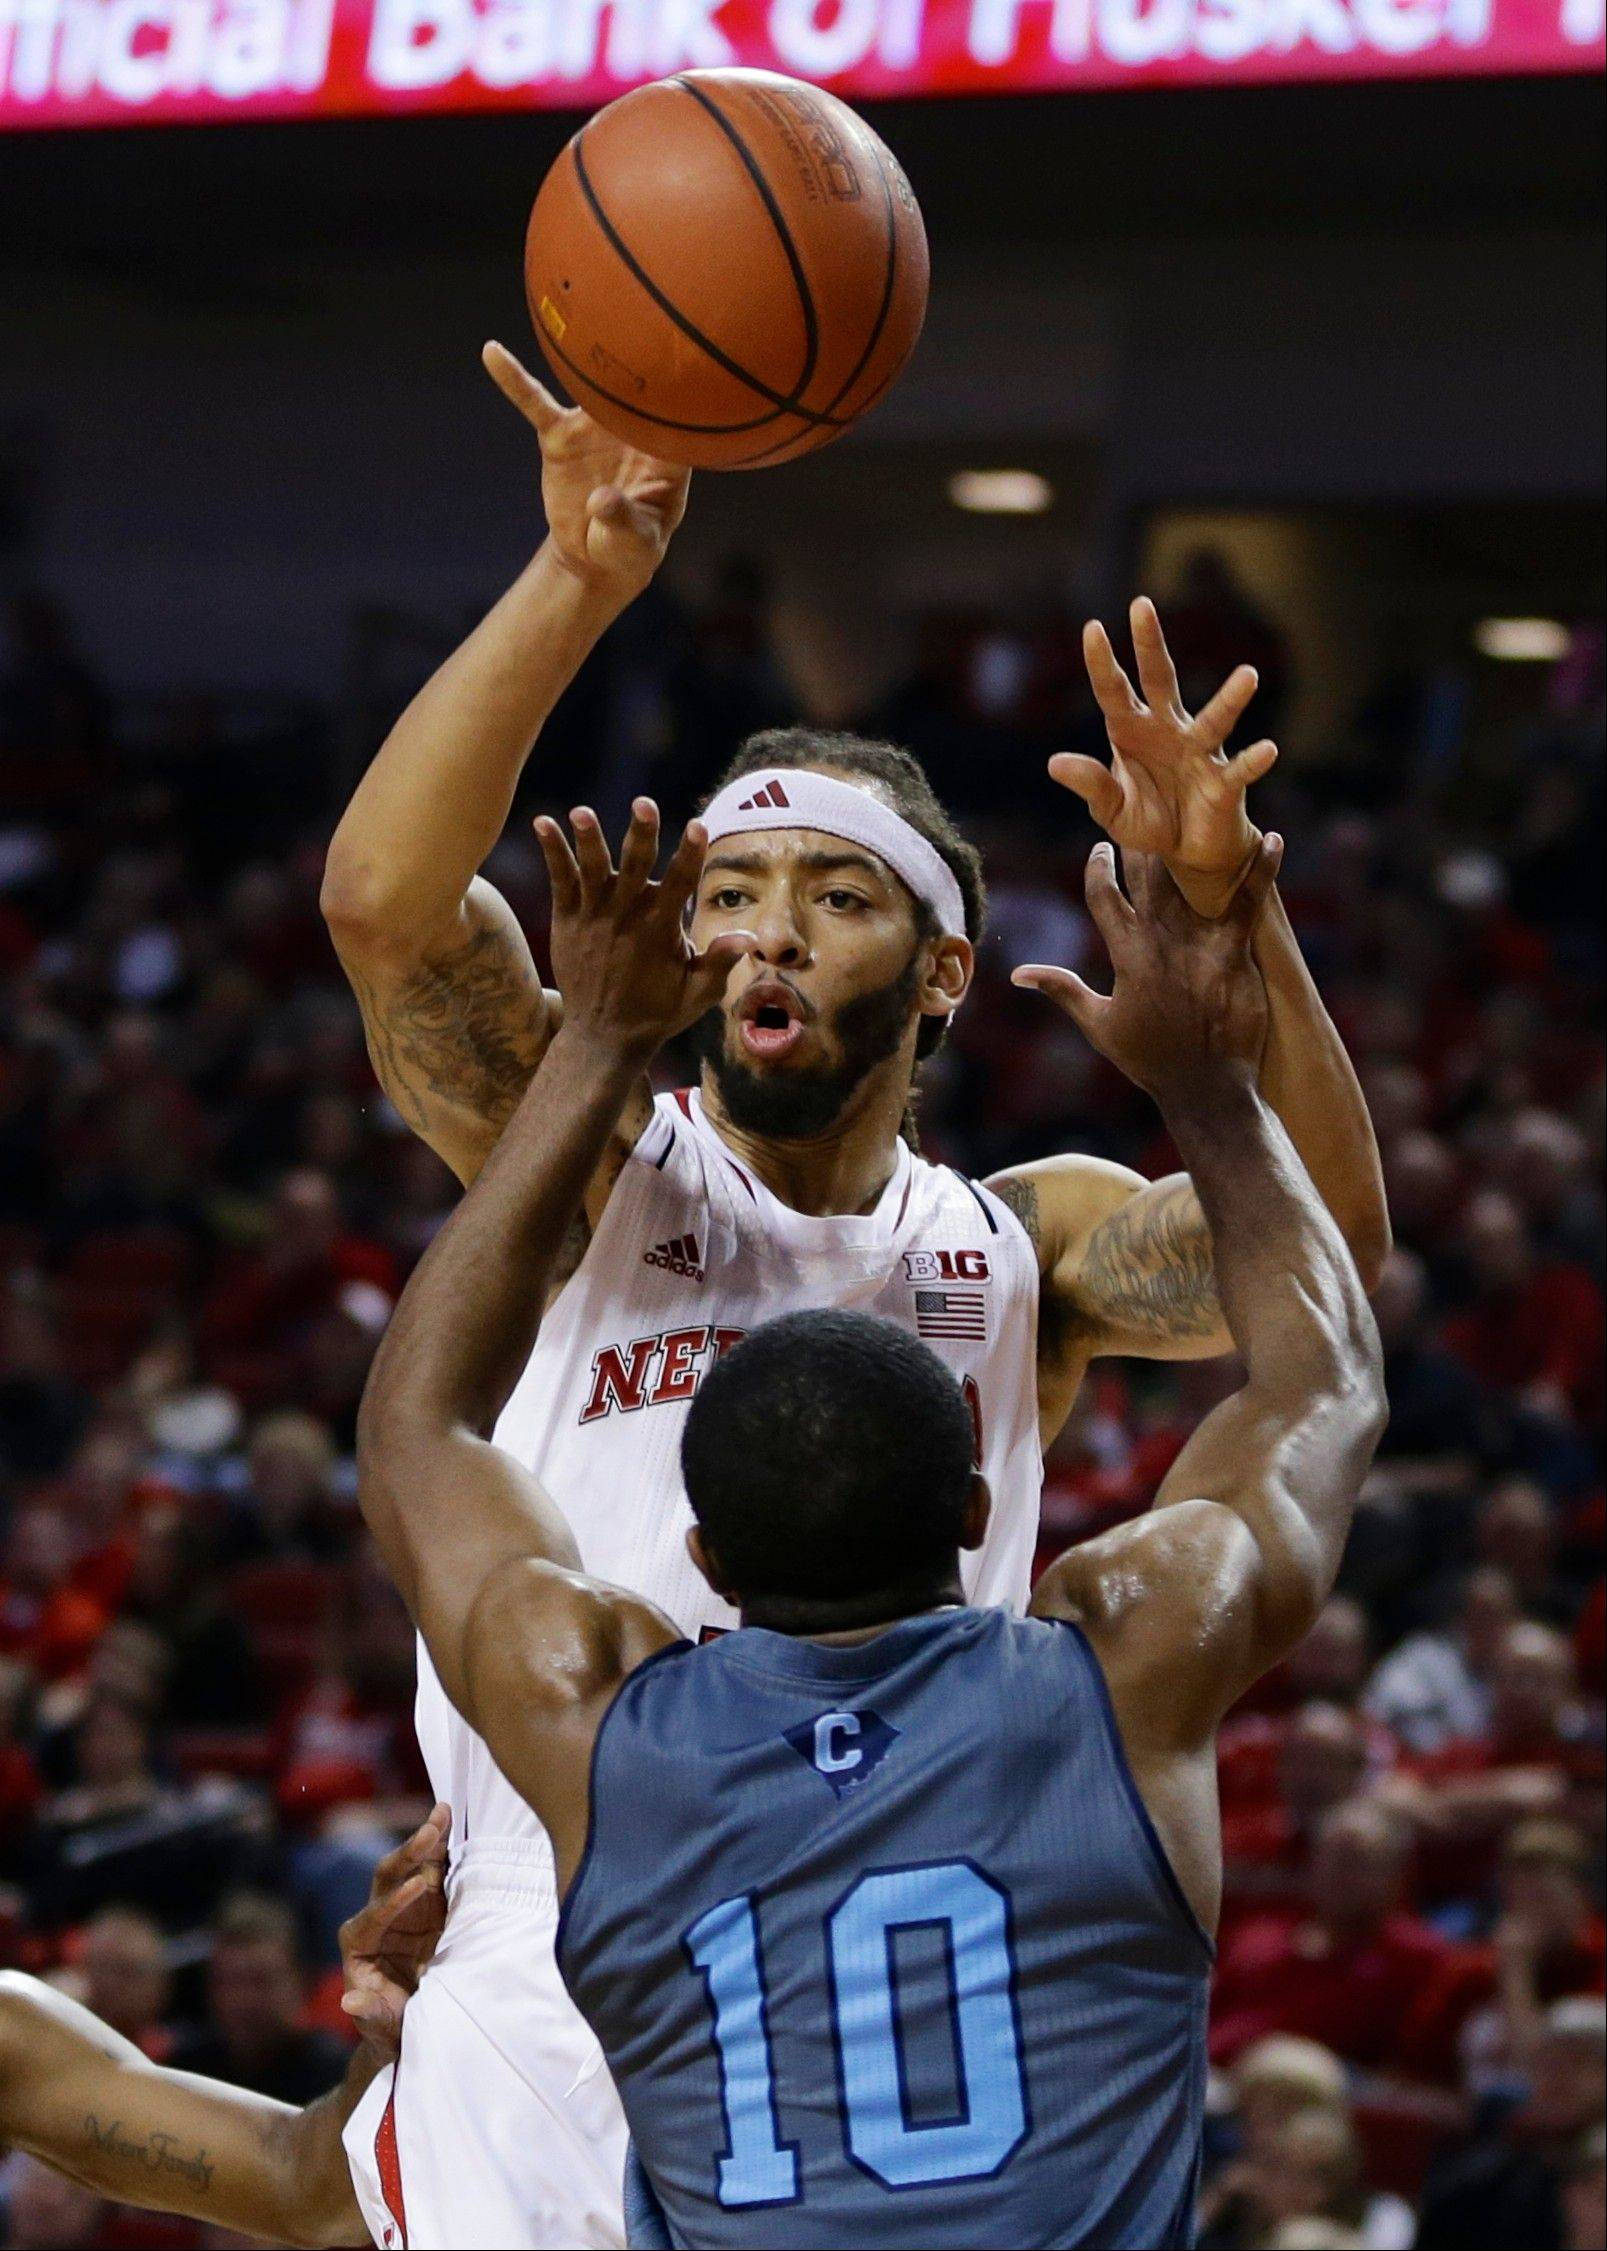 Nebraska dispatches The Citadel 77-62